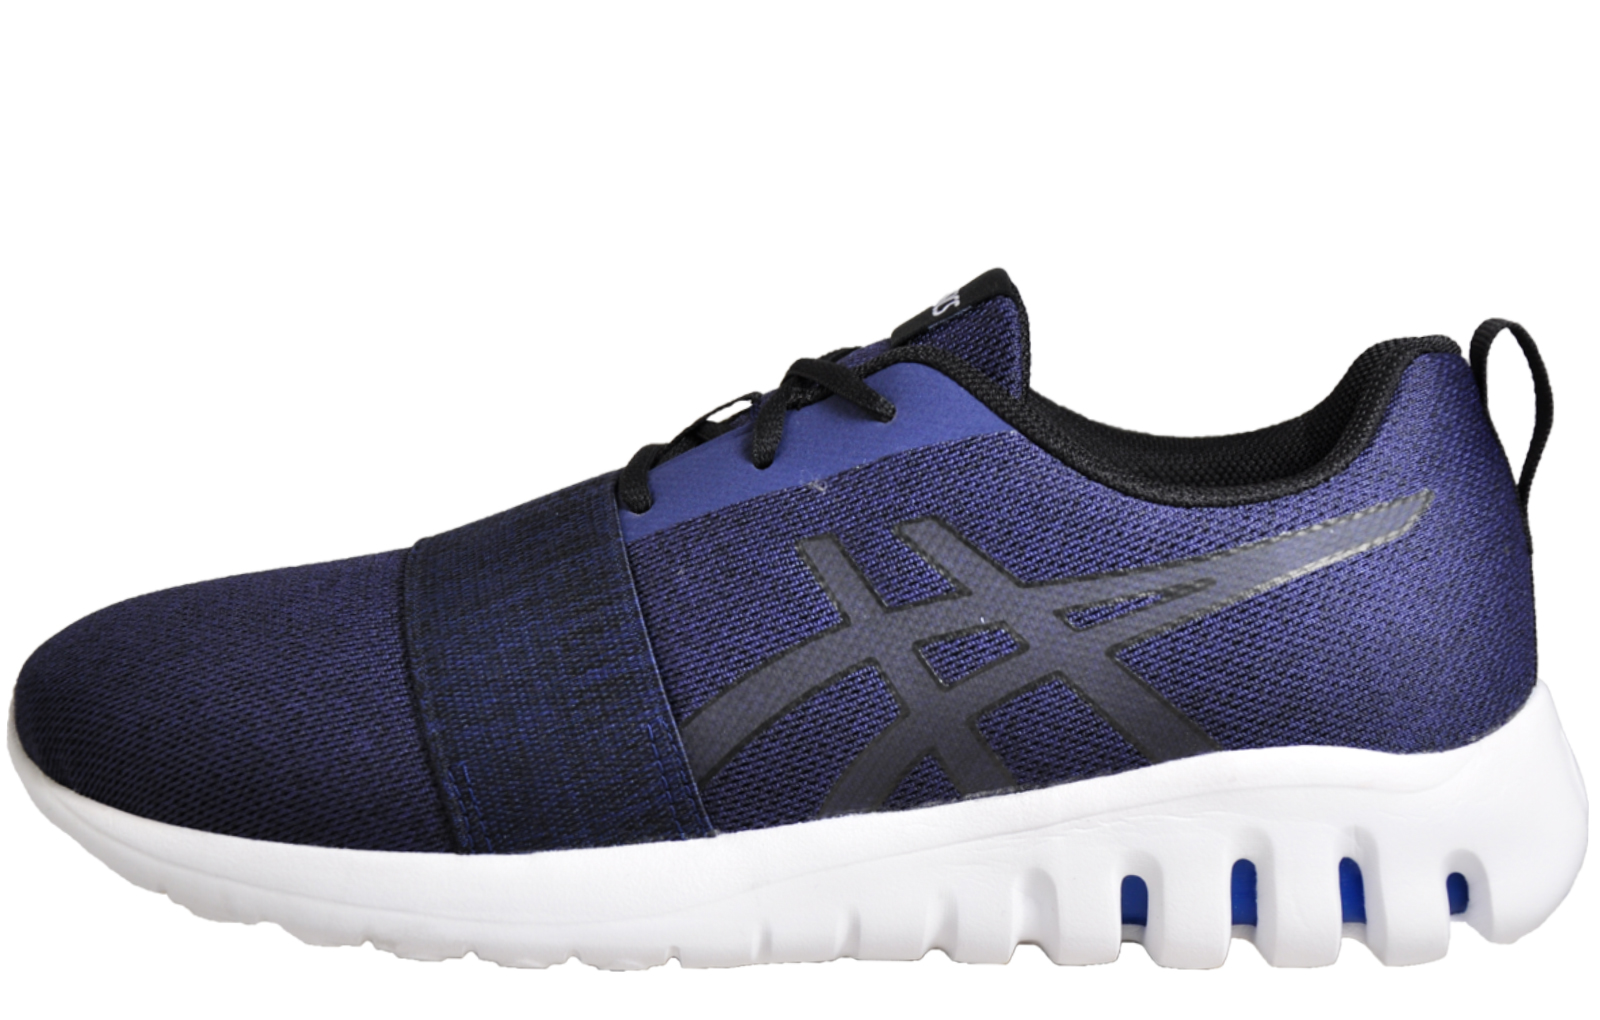 Asics Gel Quantifier Men s High-Performance Running Shoes Fitness Gym  Trainers Blue 8e2f037a430